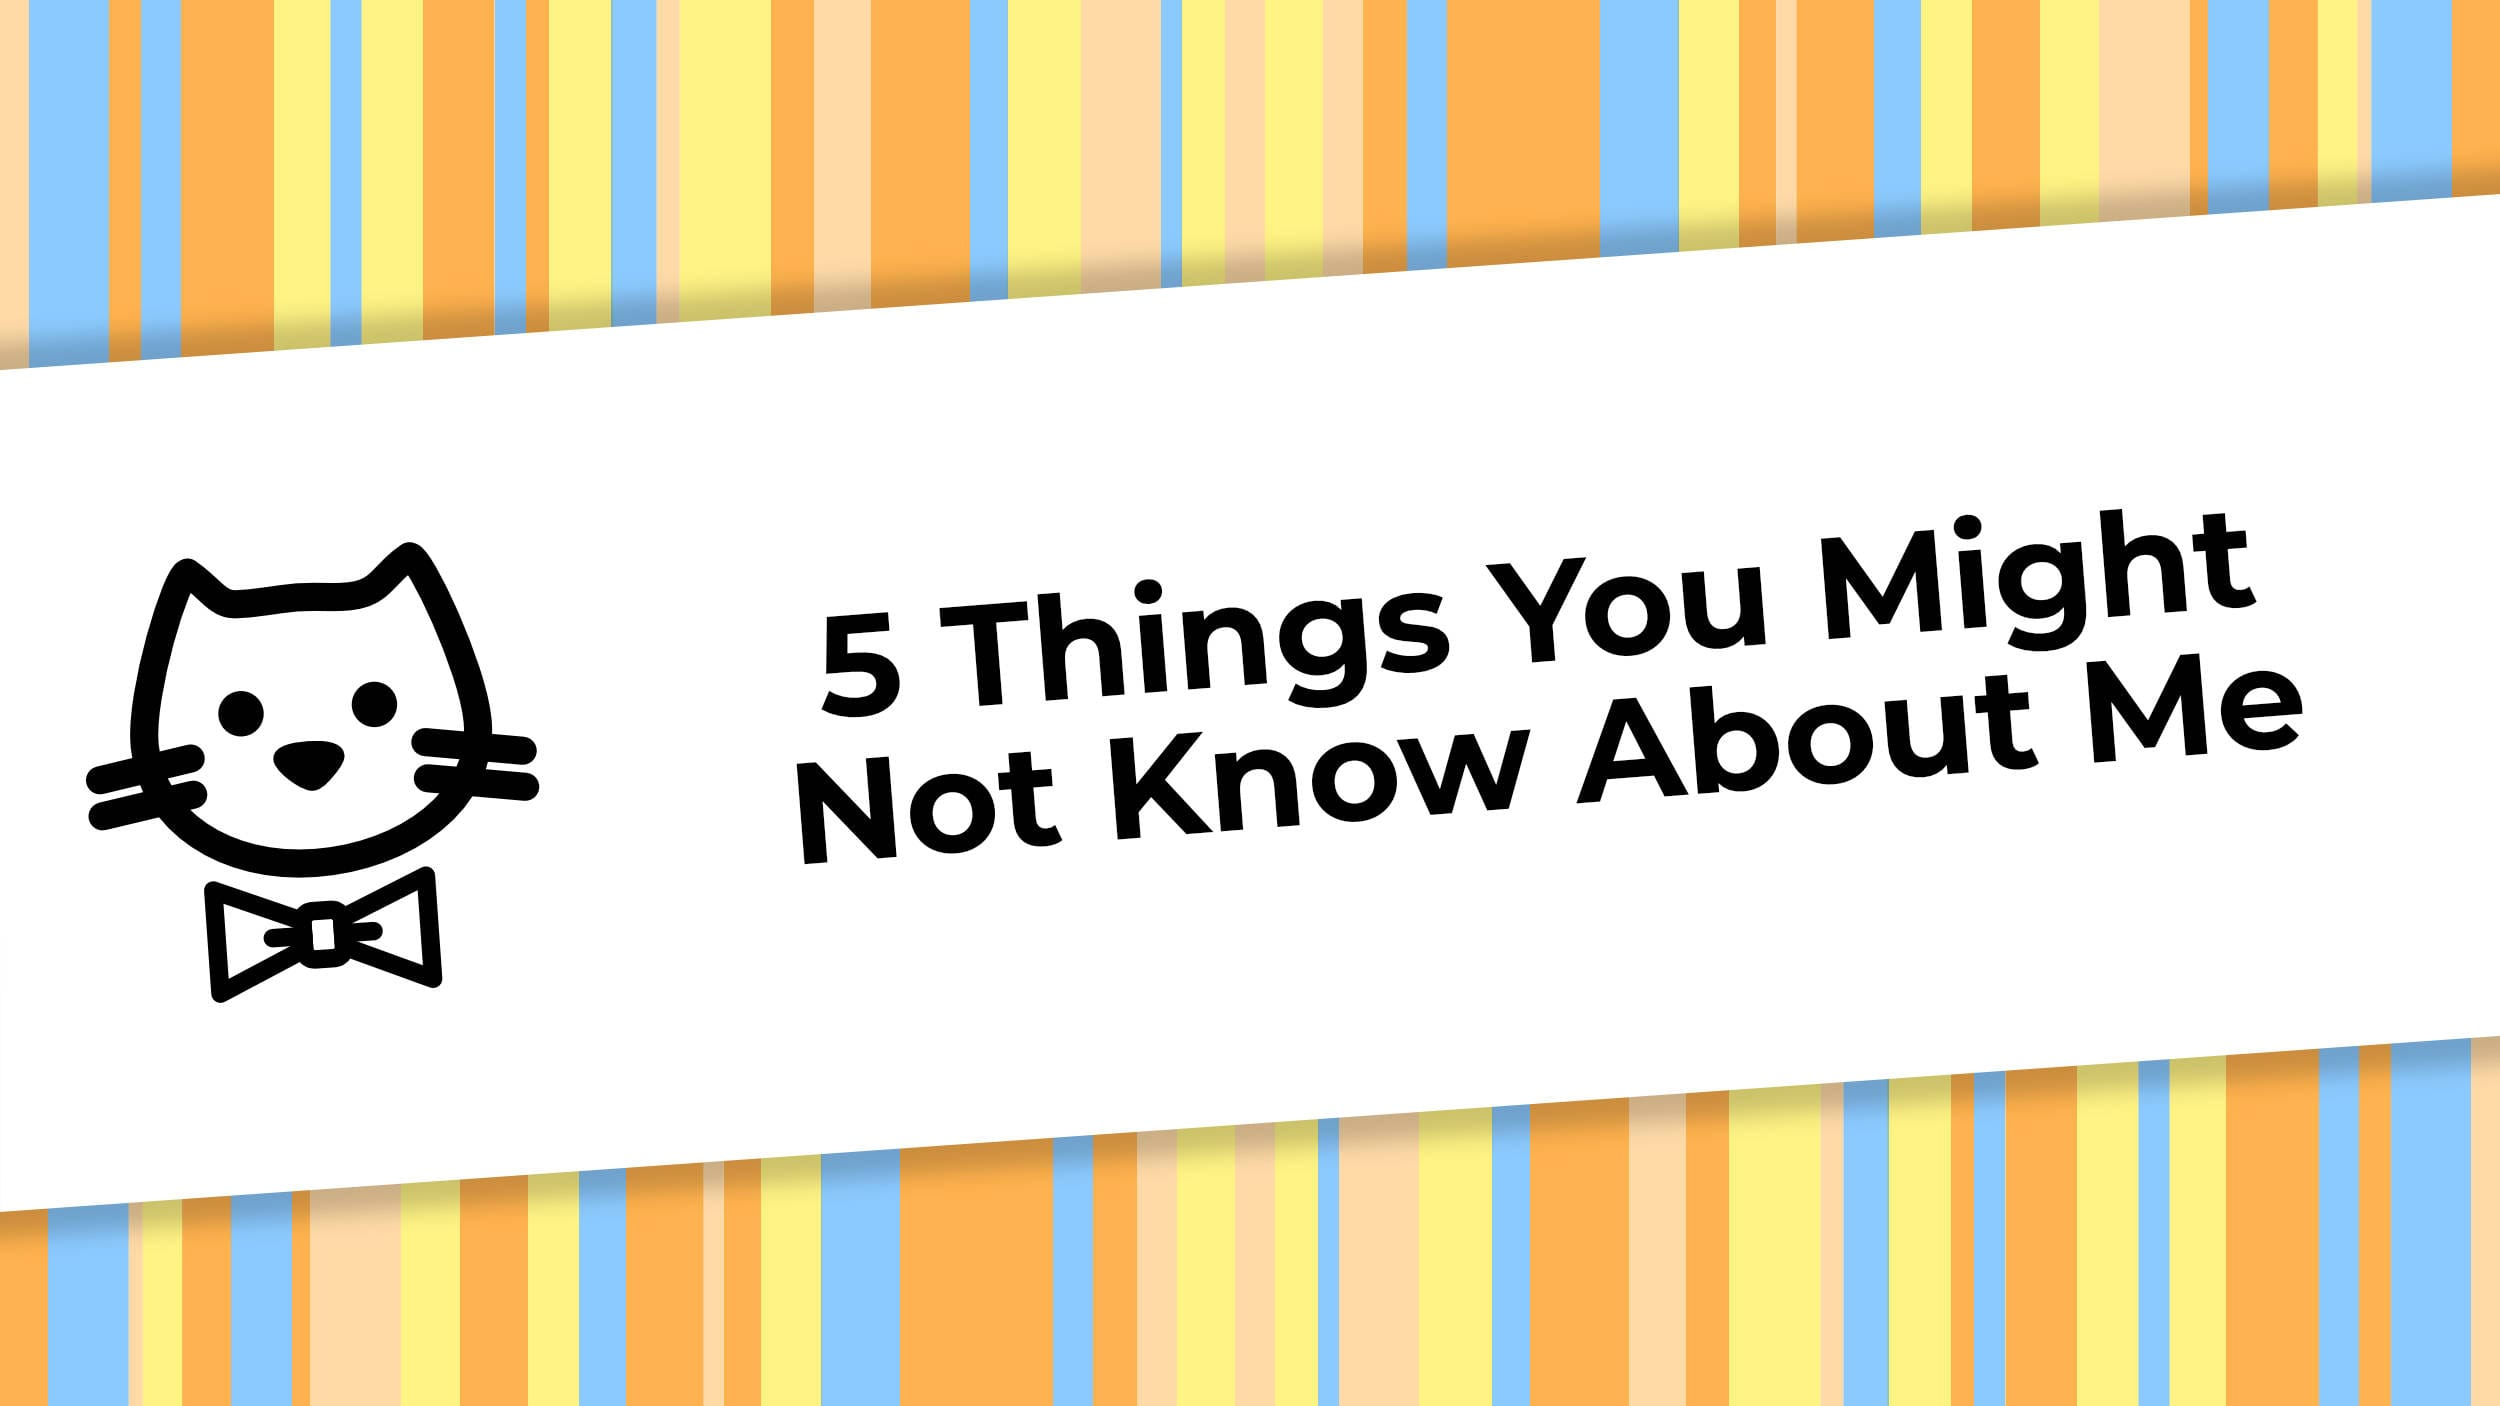 5 Things You Might Not Know About Me.jpg